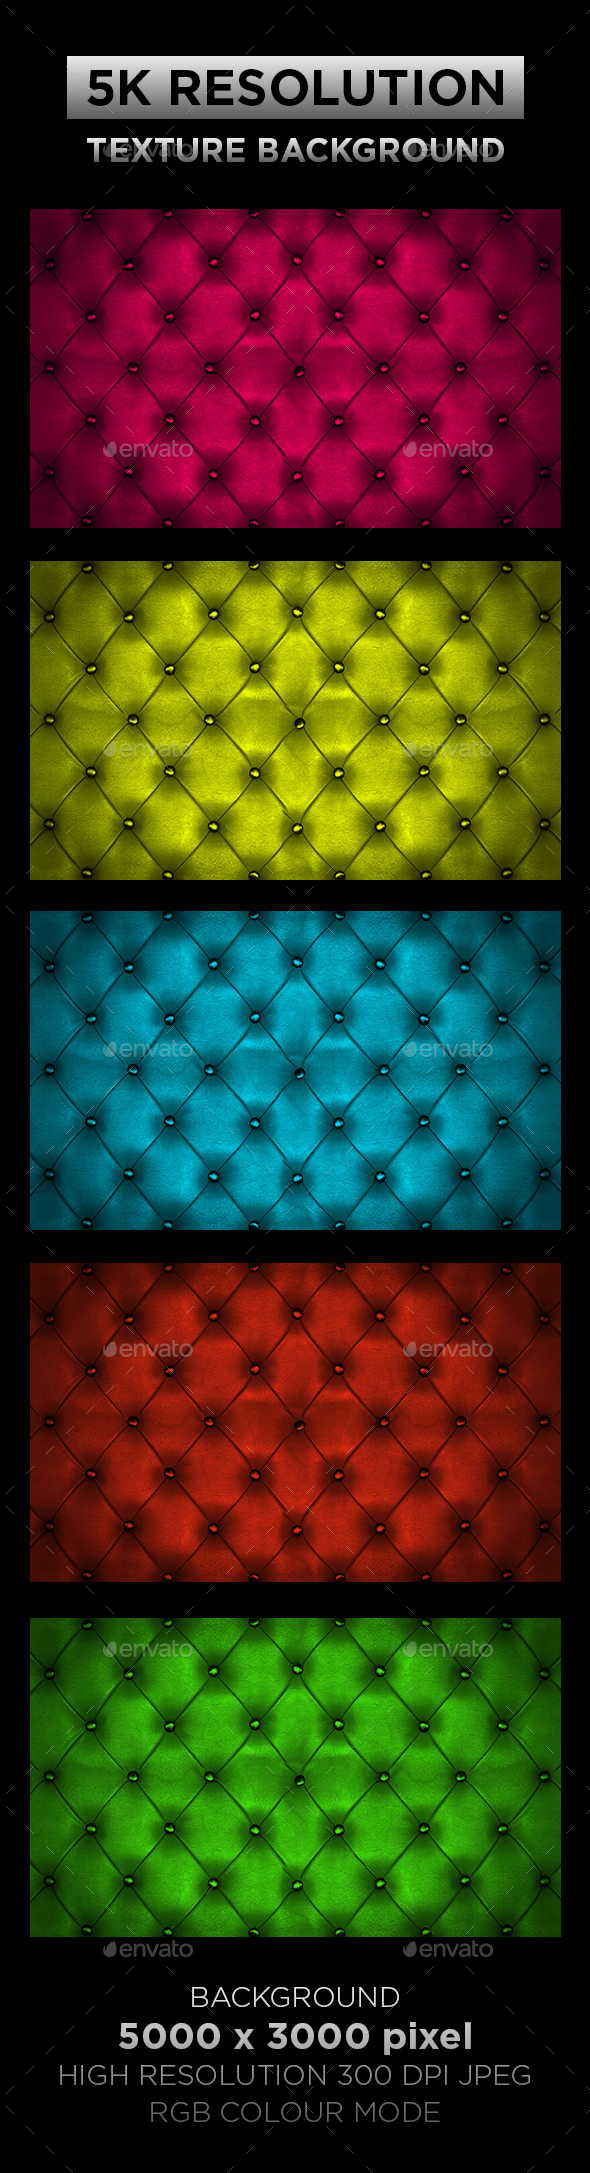 Sofa Texture Background 001